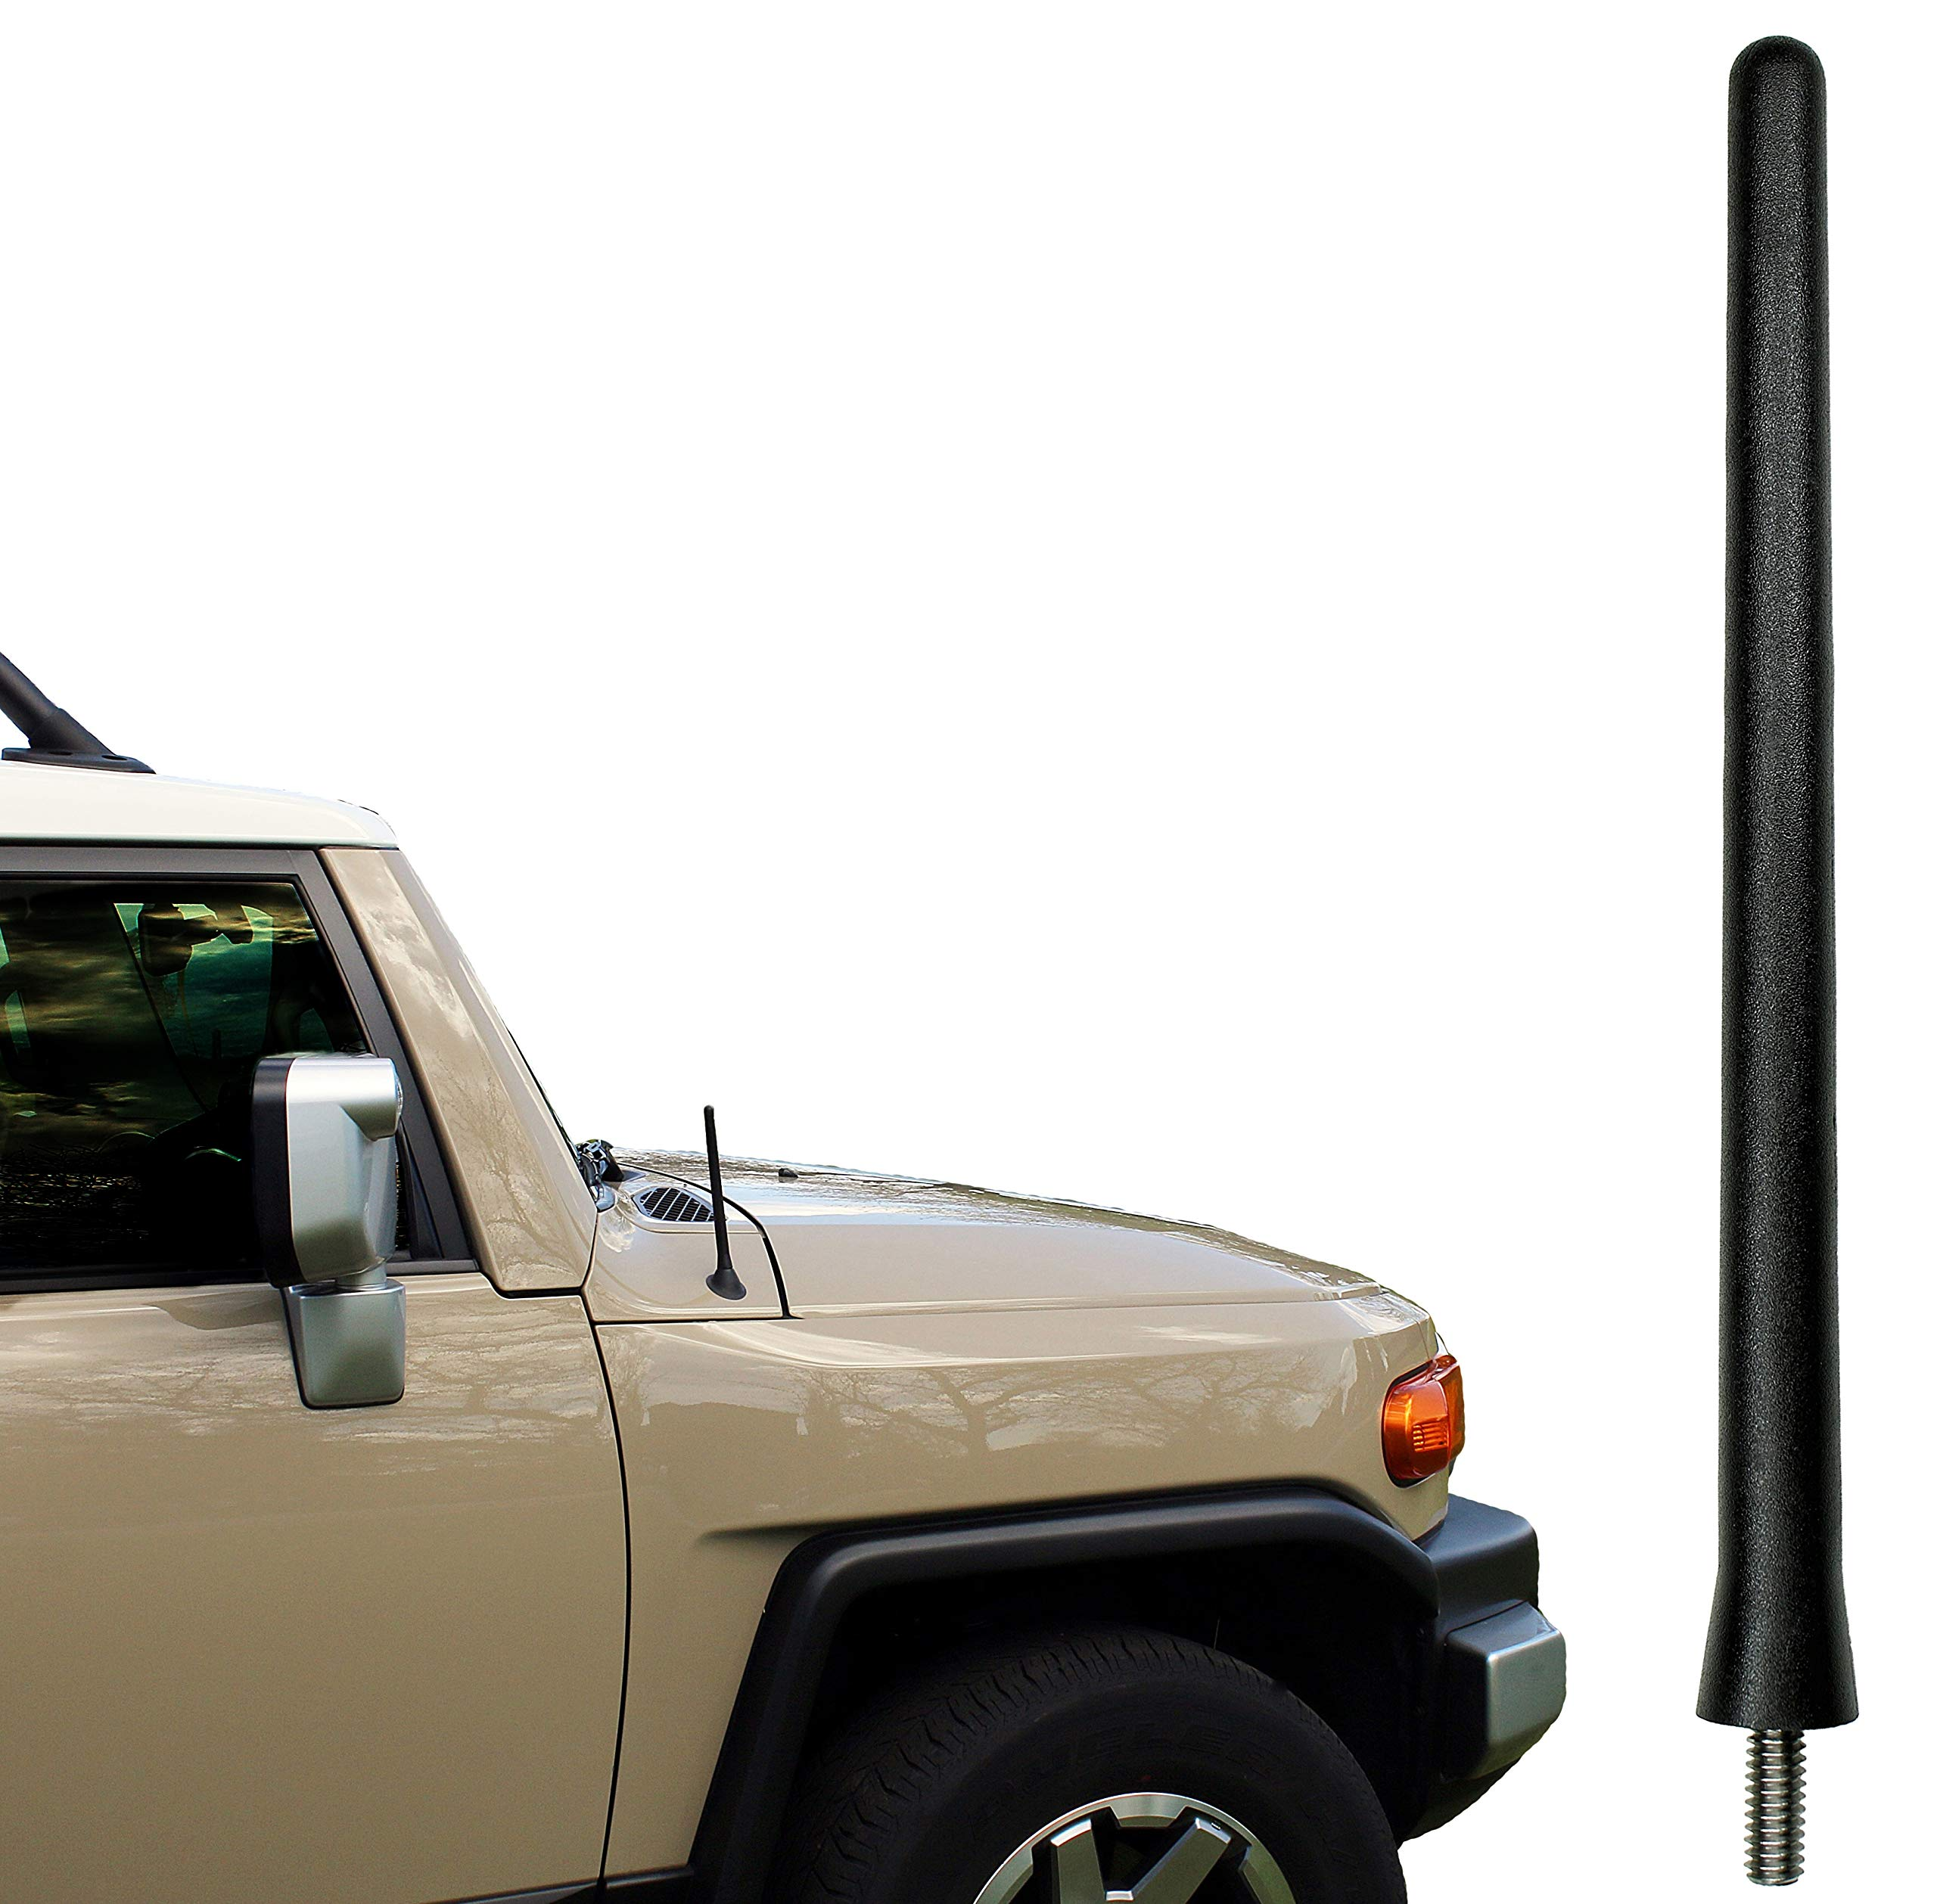 AntennaMastsRus - The Original 6 3/4 Inch is Compatible with Toyota FJ Cruiser (2007-2015) - Car Wash Proof Short Rubber Antenna - Internal Copper Coil - Premium Reception - German Engineered